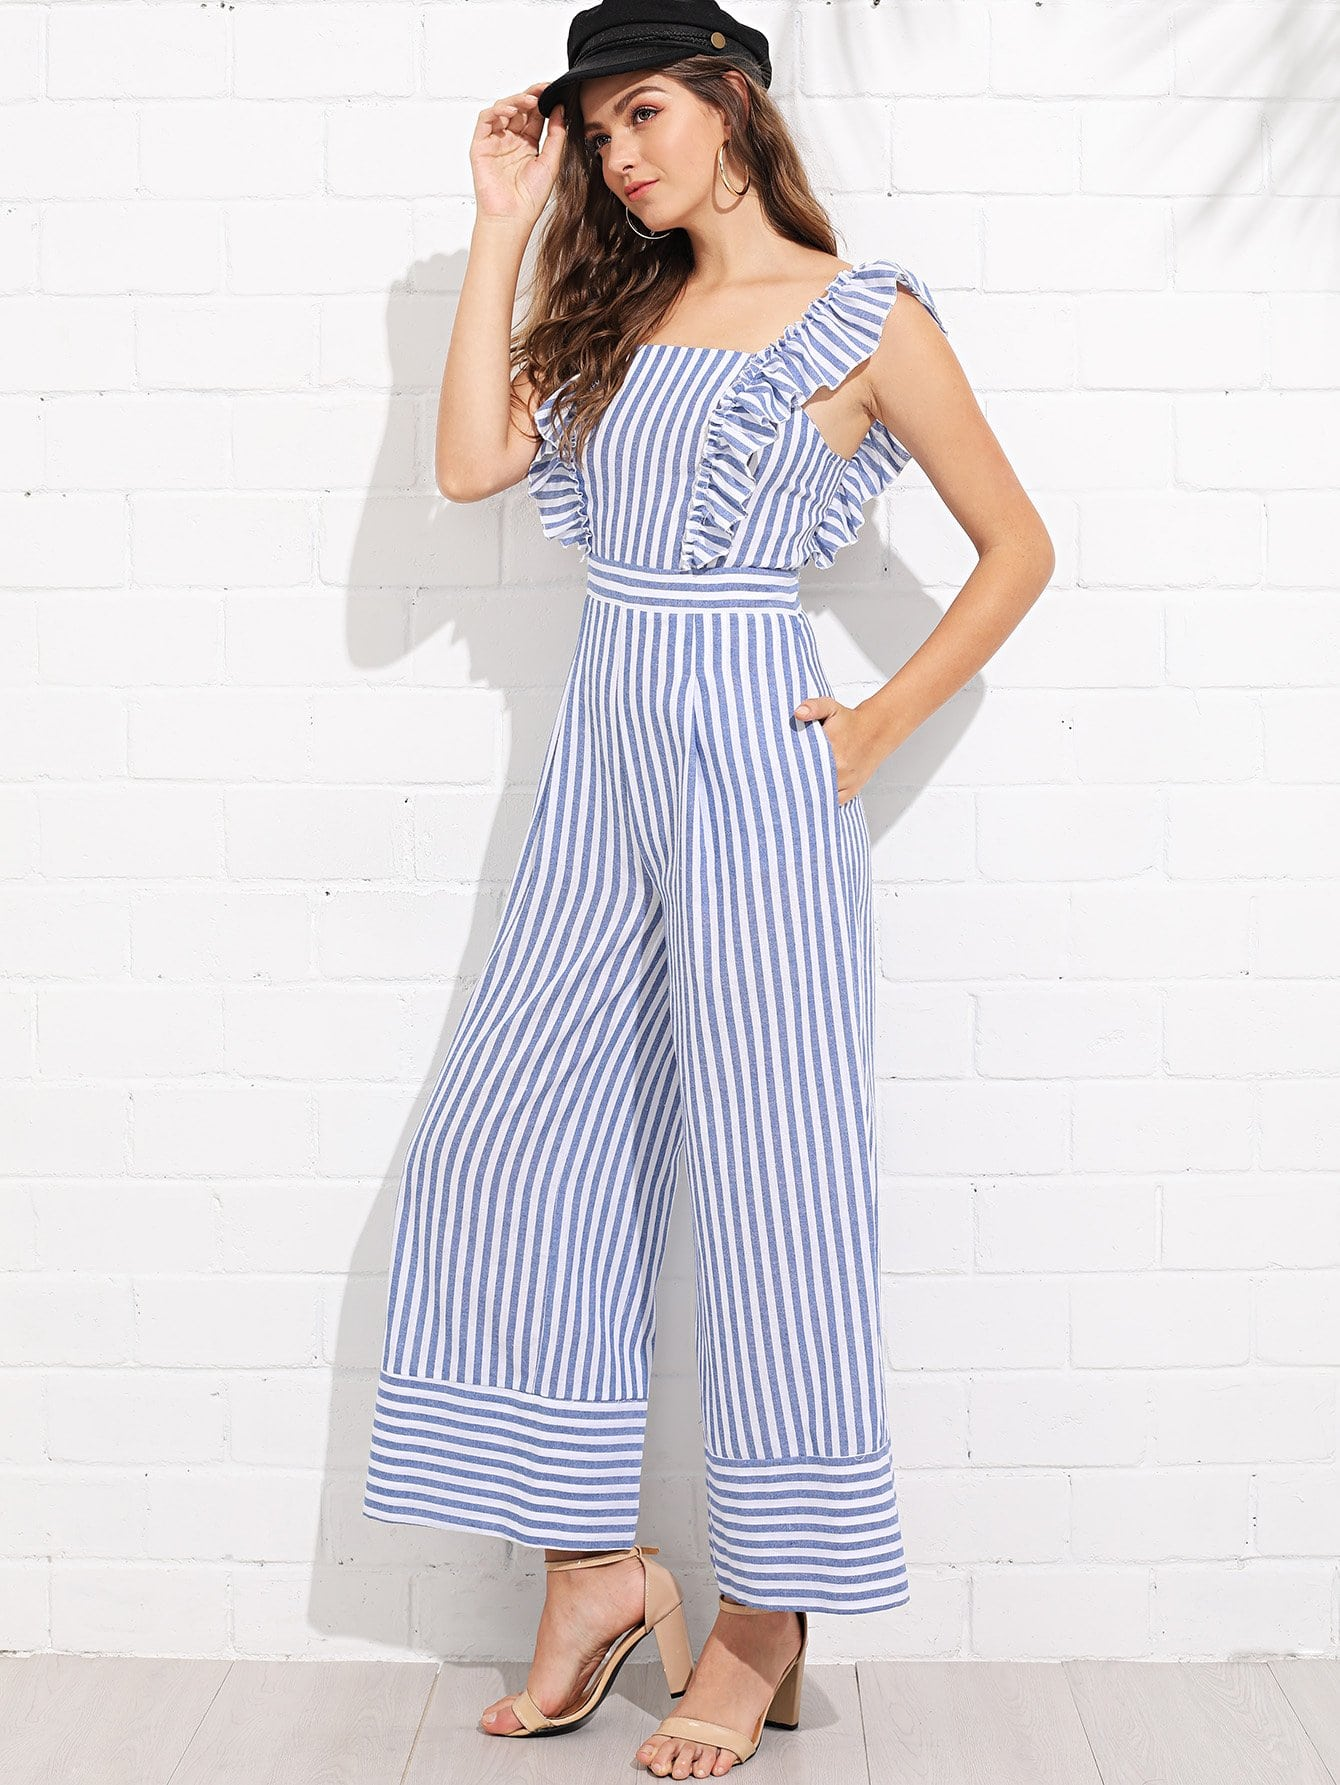 Ruffle Trim Wide Leg Striped Jumpsuit choker neck embroidered ruffle trim jumpsuit